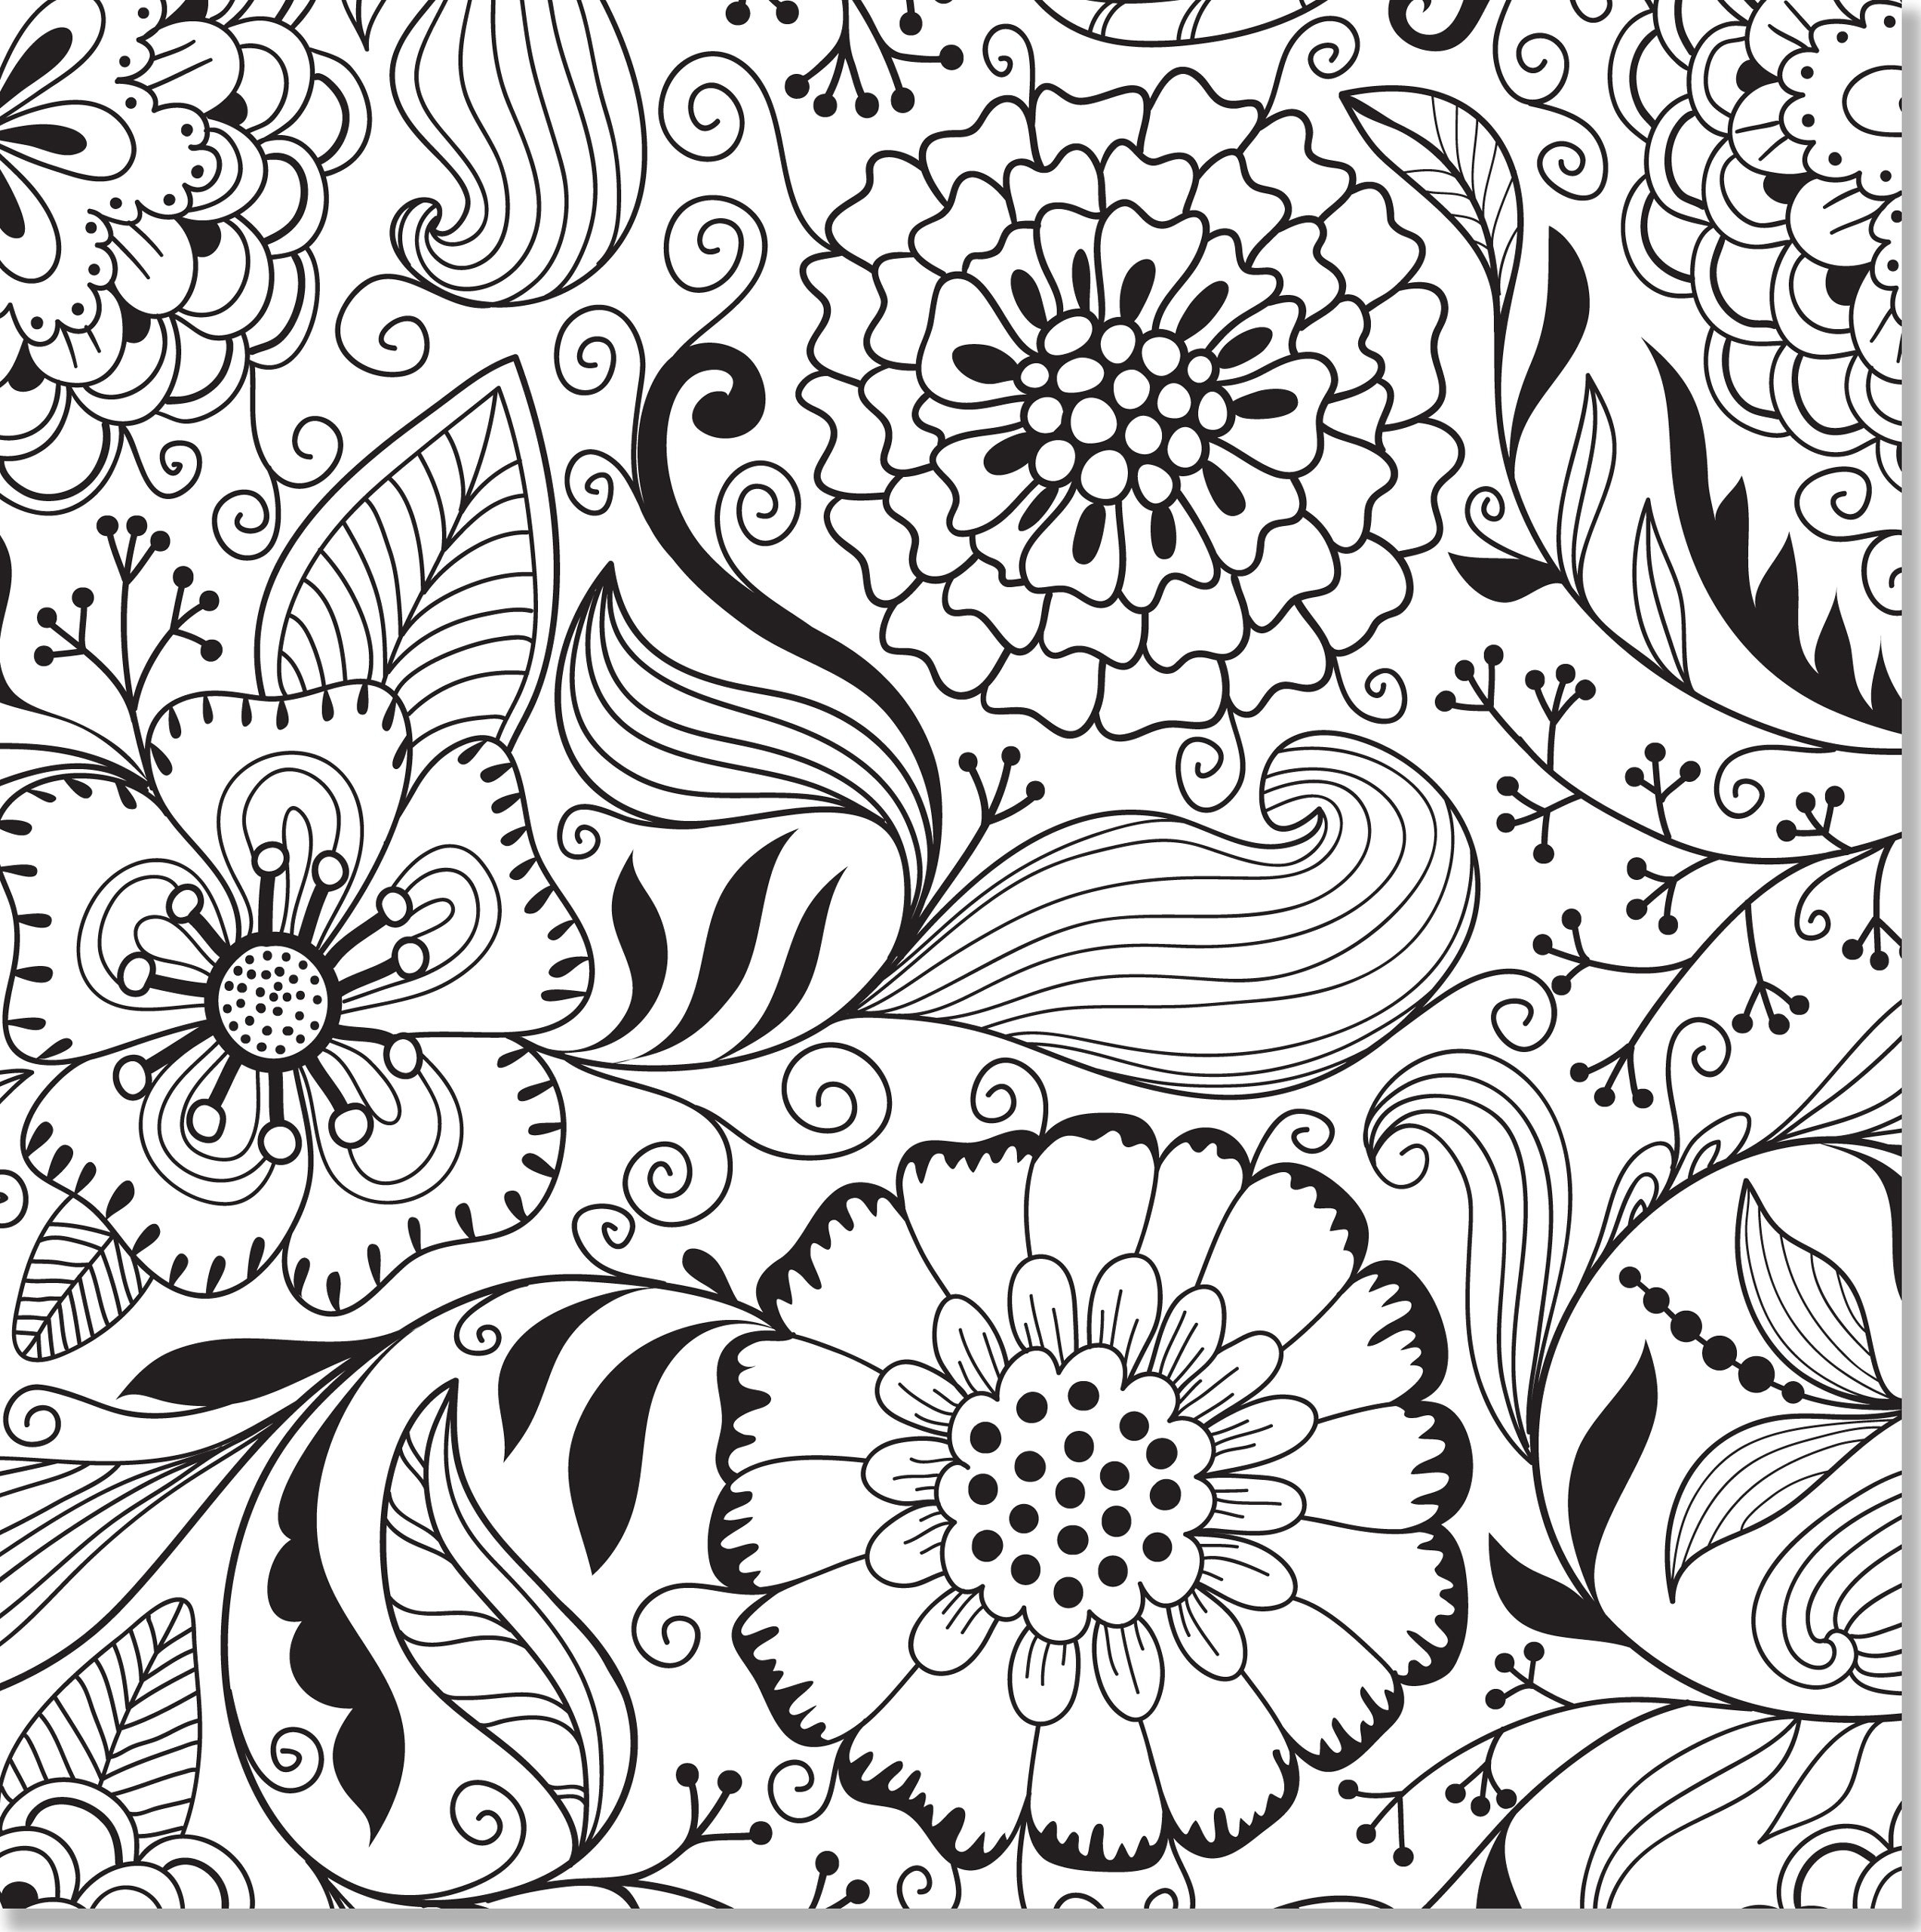 Coloring Pages : Free Printable Coloring Pages For Adults Advanced - Free Printable Coloring Pages For Adults Advanced